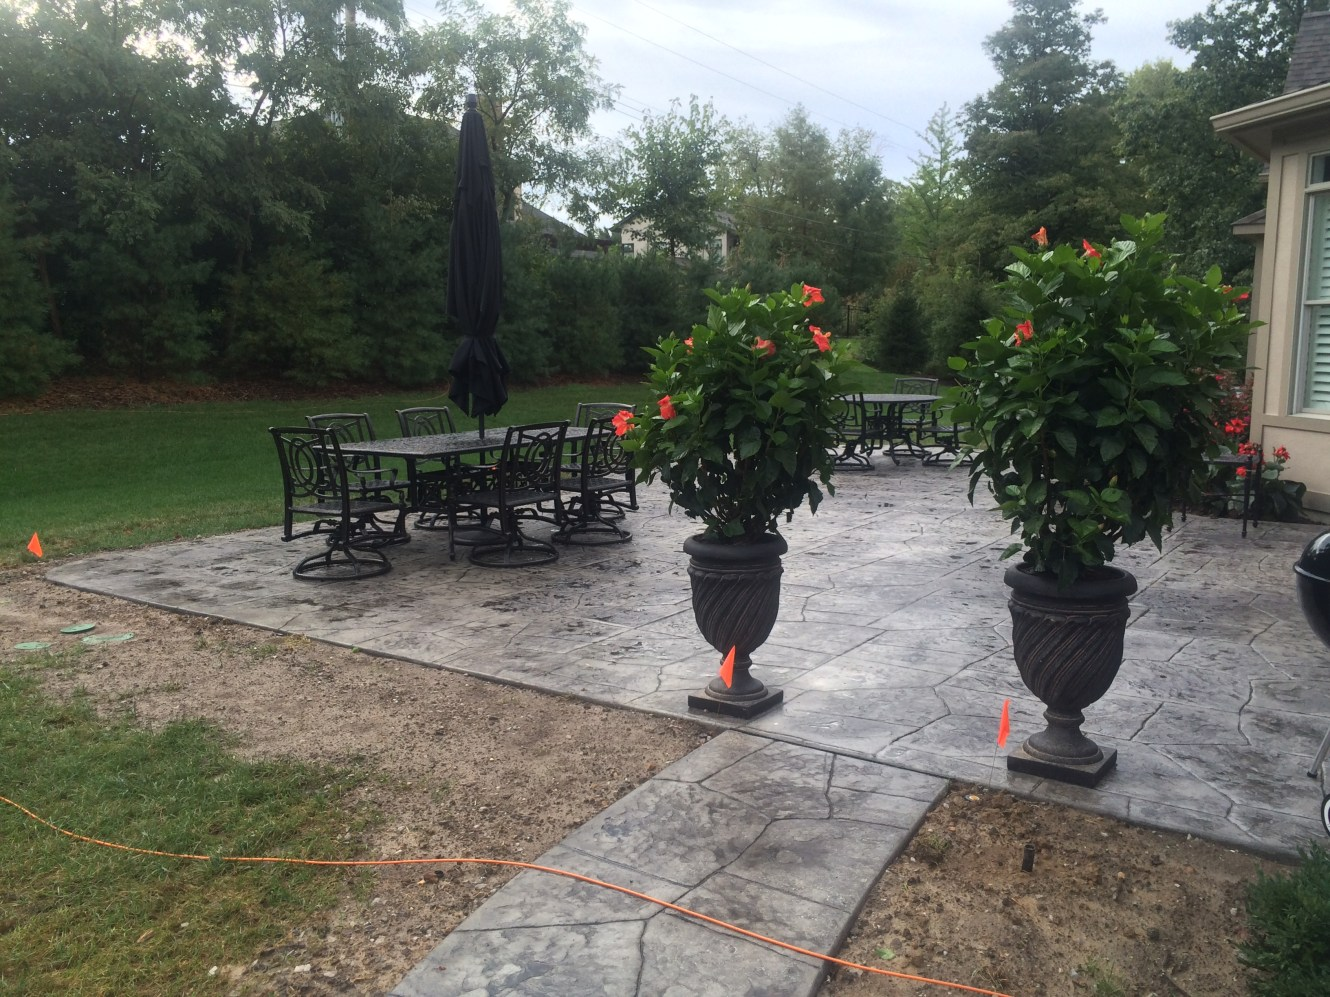 Grey Concrete Patio with Table, Chairs and Planters